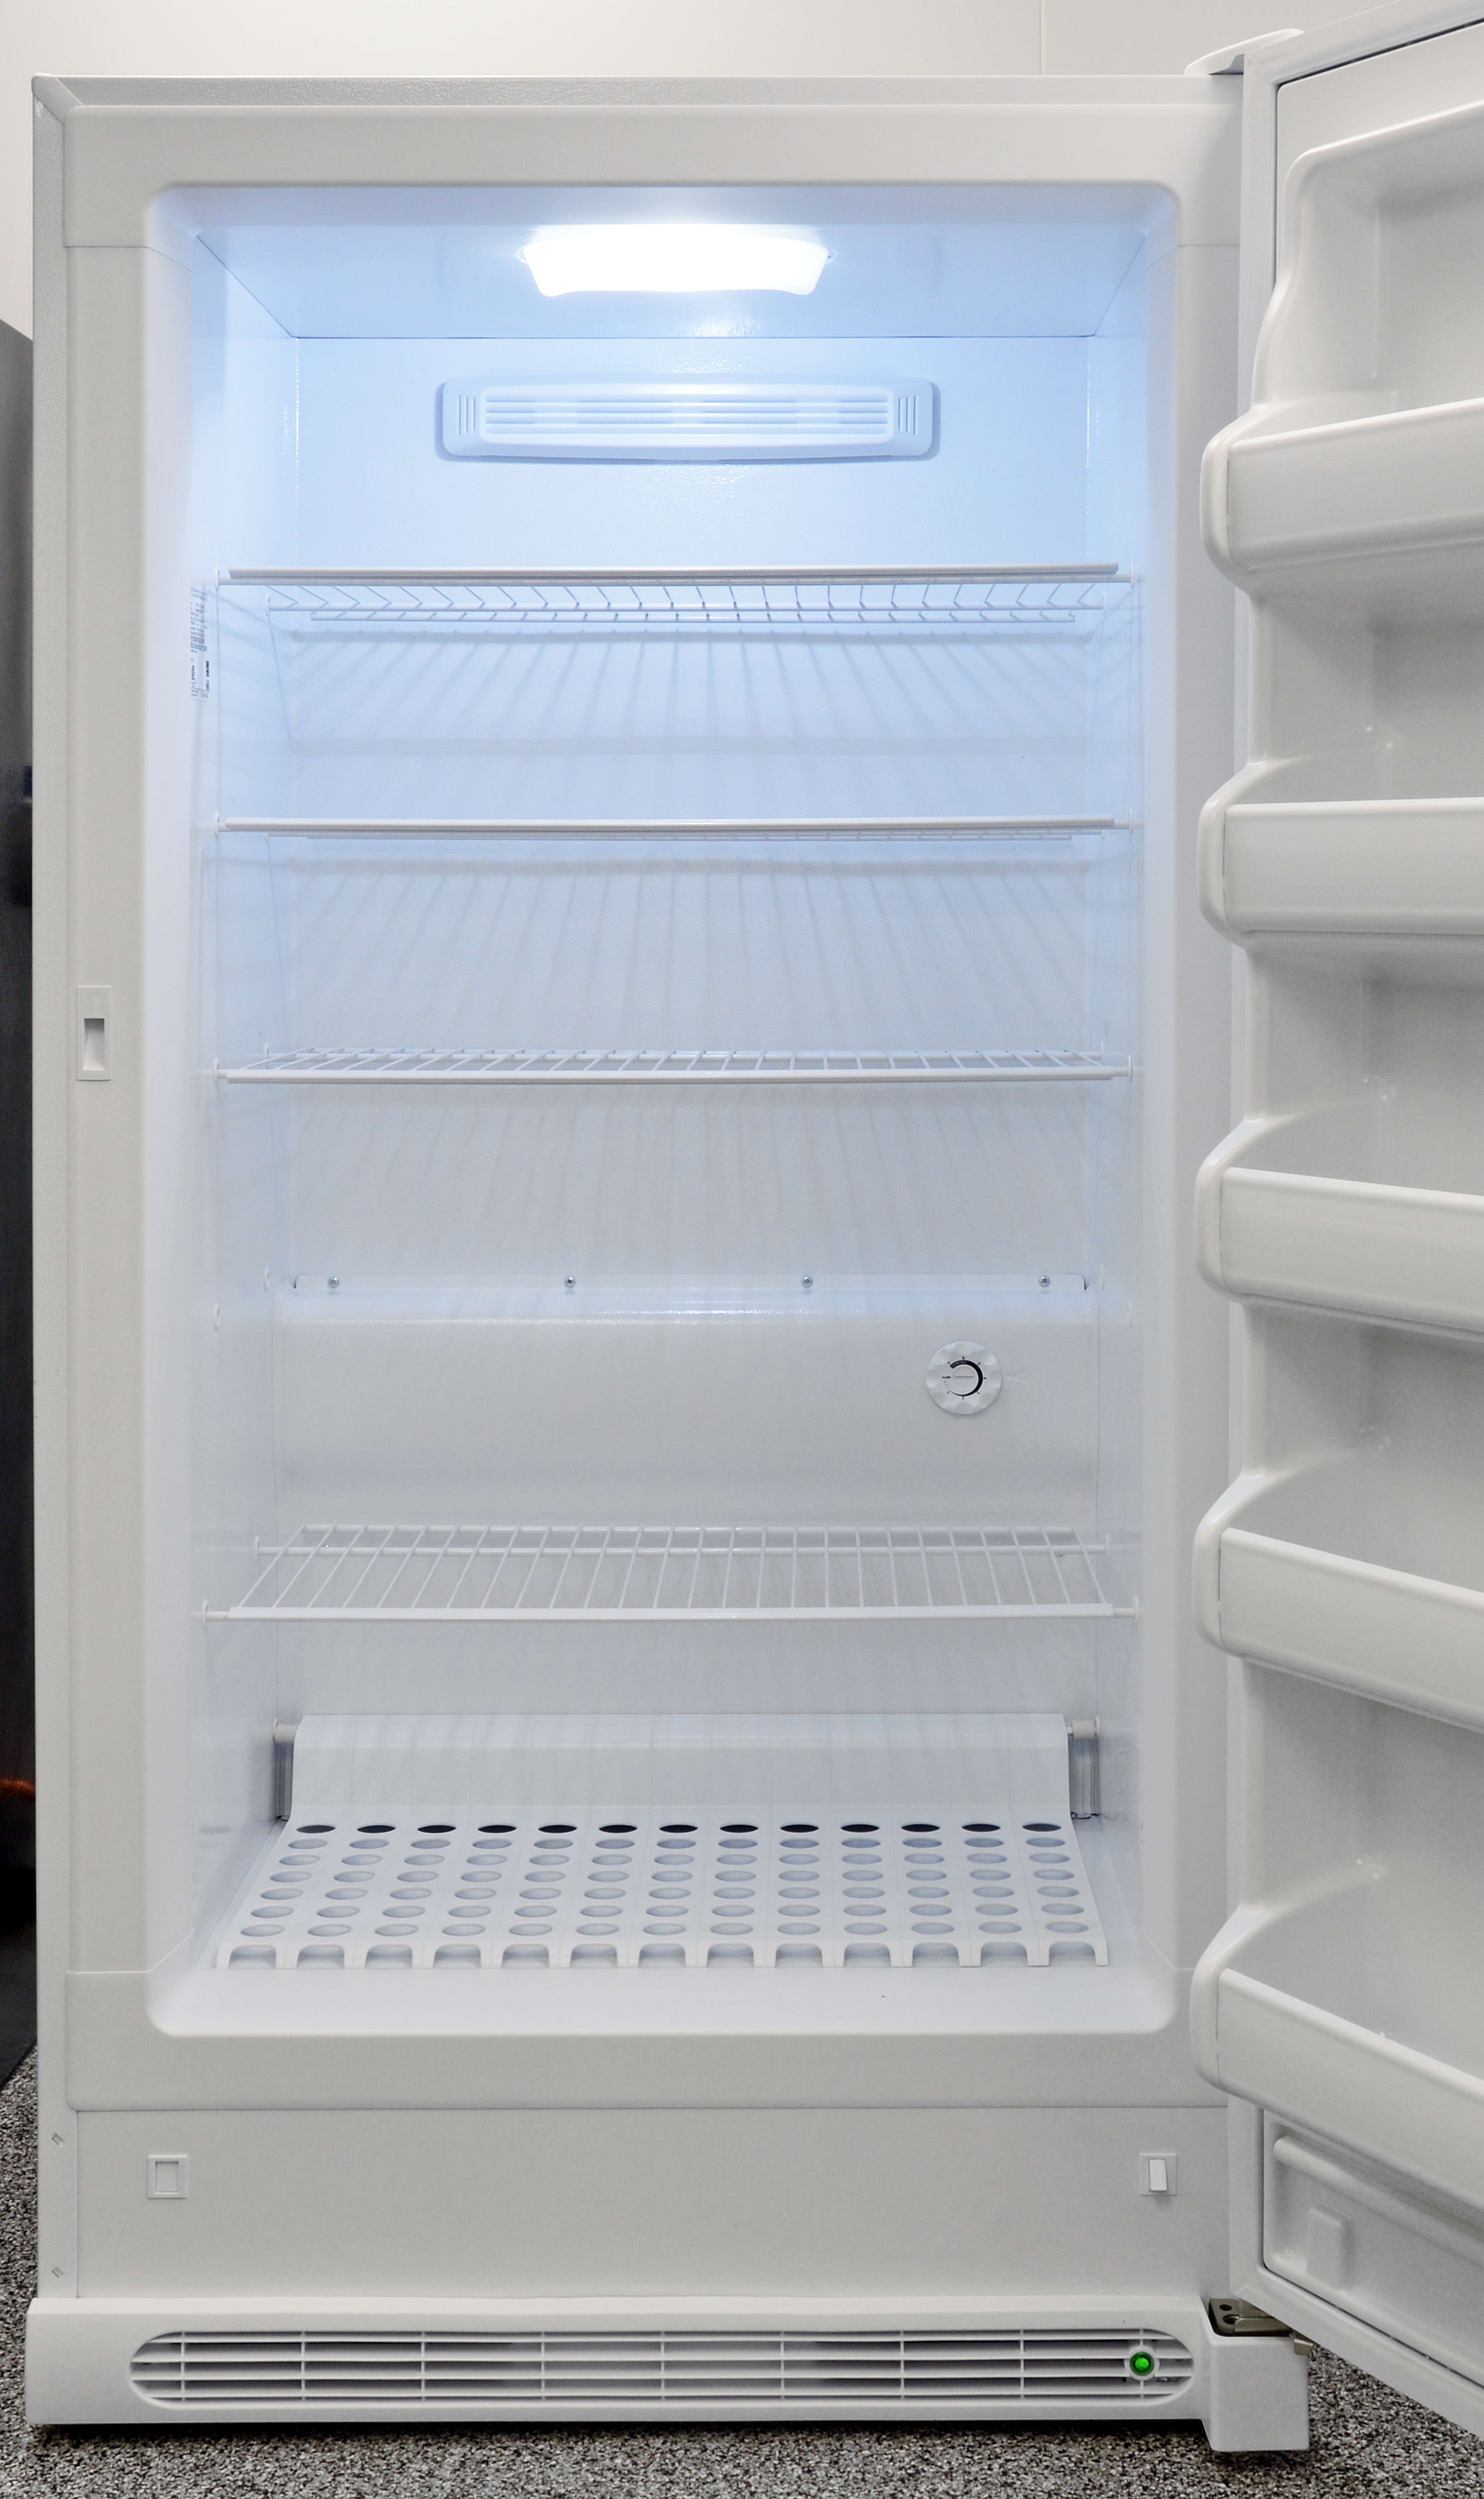 Five distinct shelving areas inside the Frigidaire FFFH17F2QW provide ample room for frozen food.